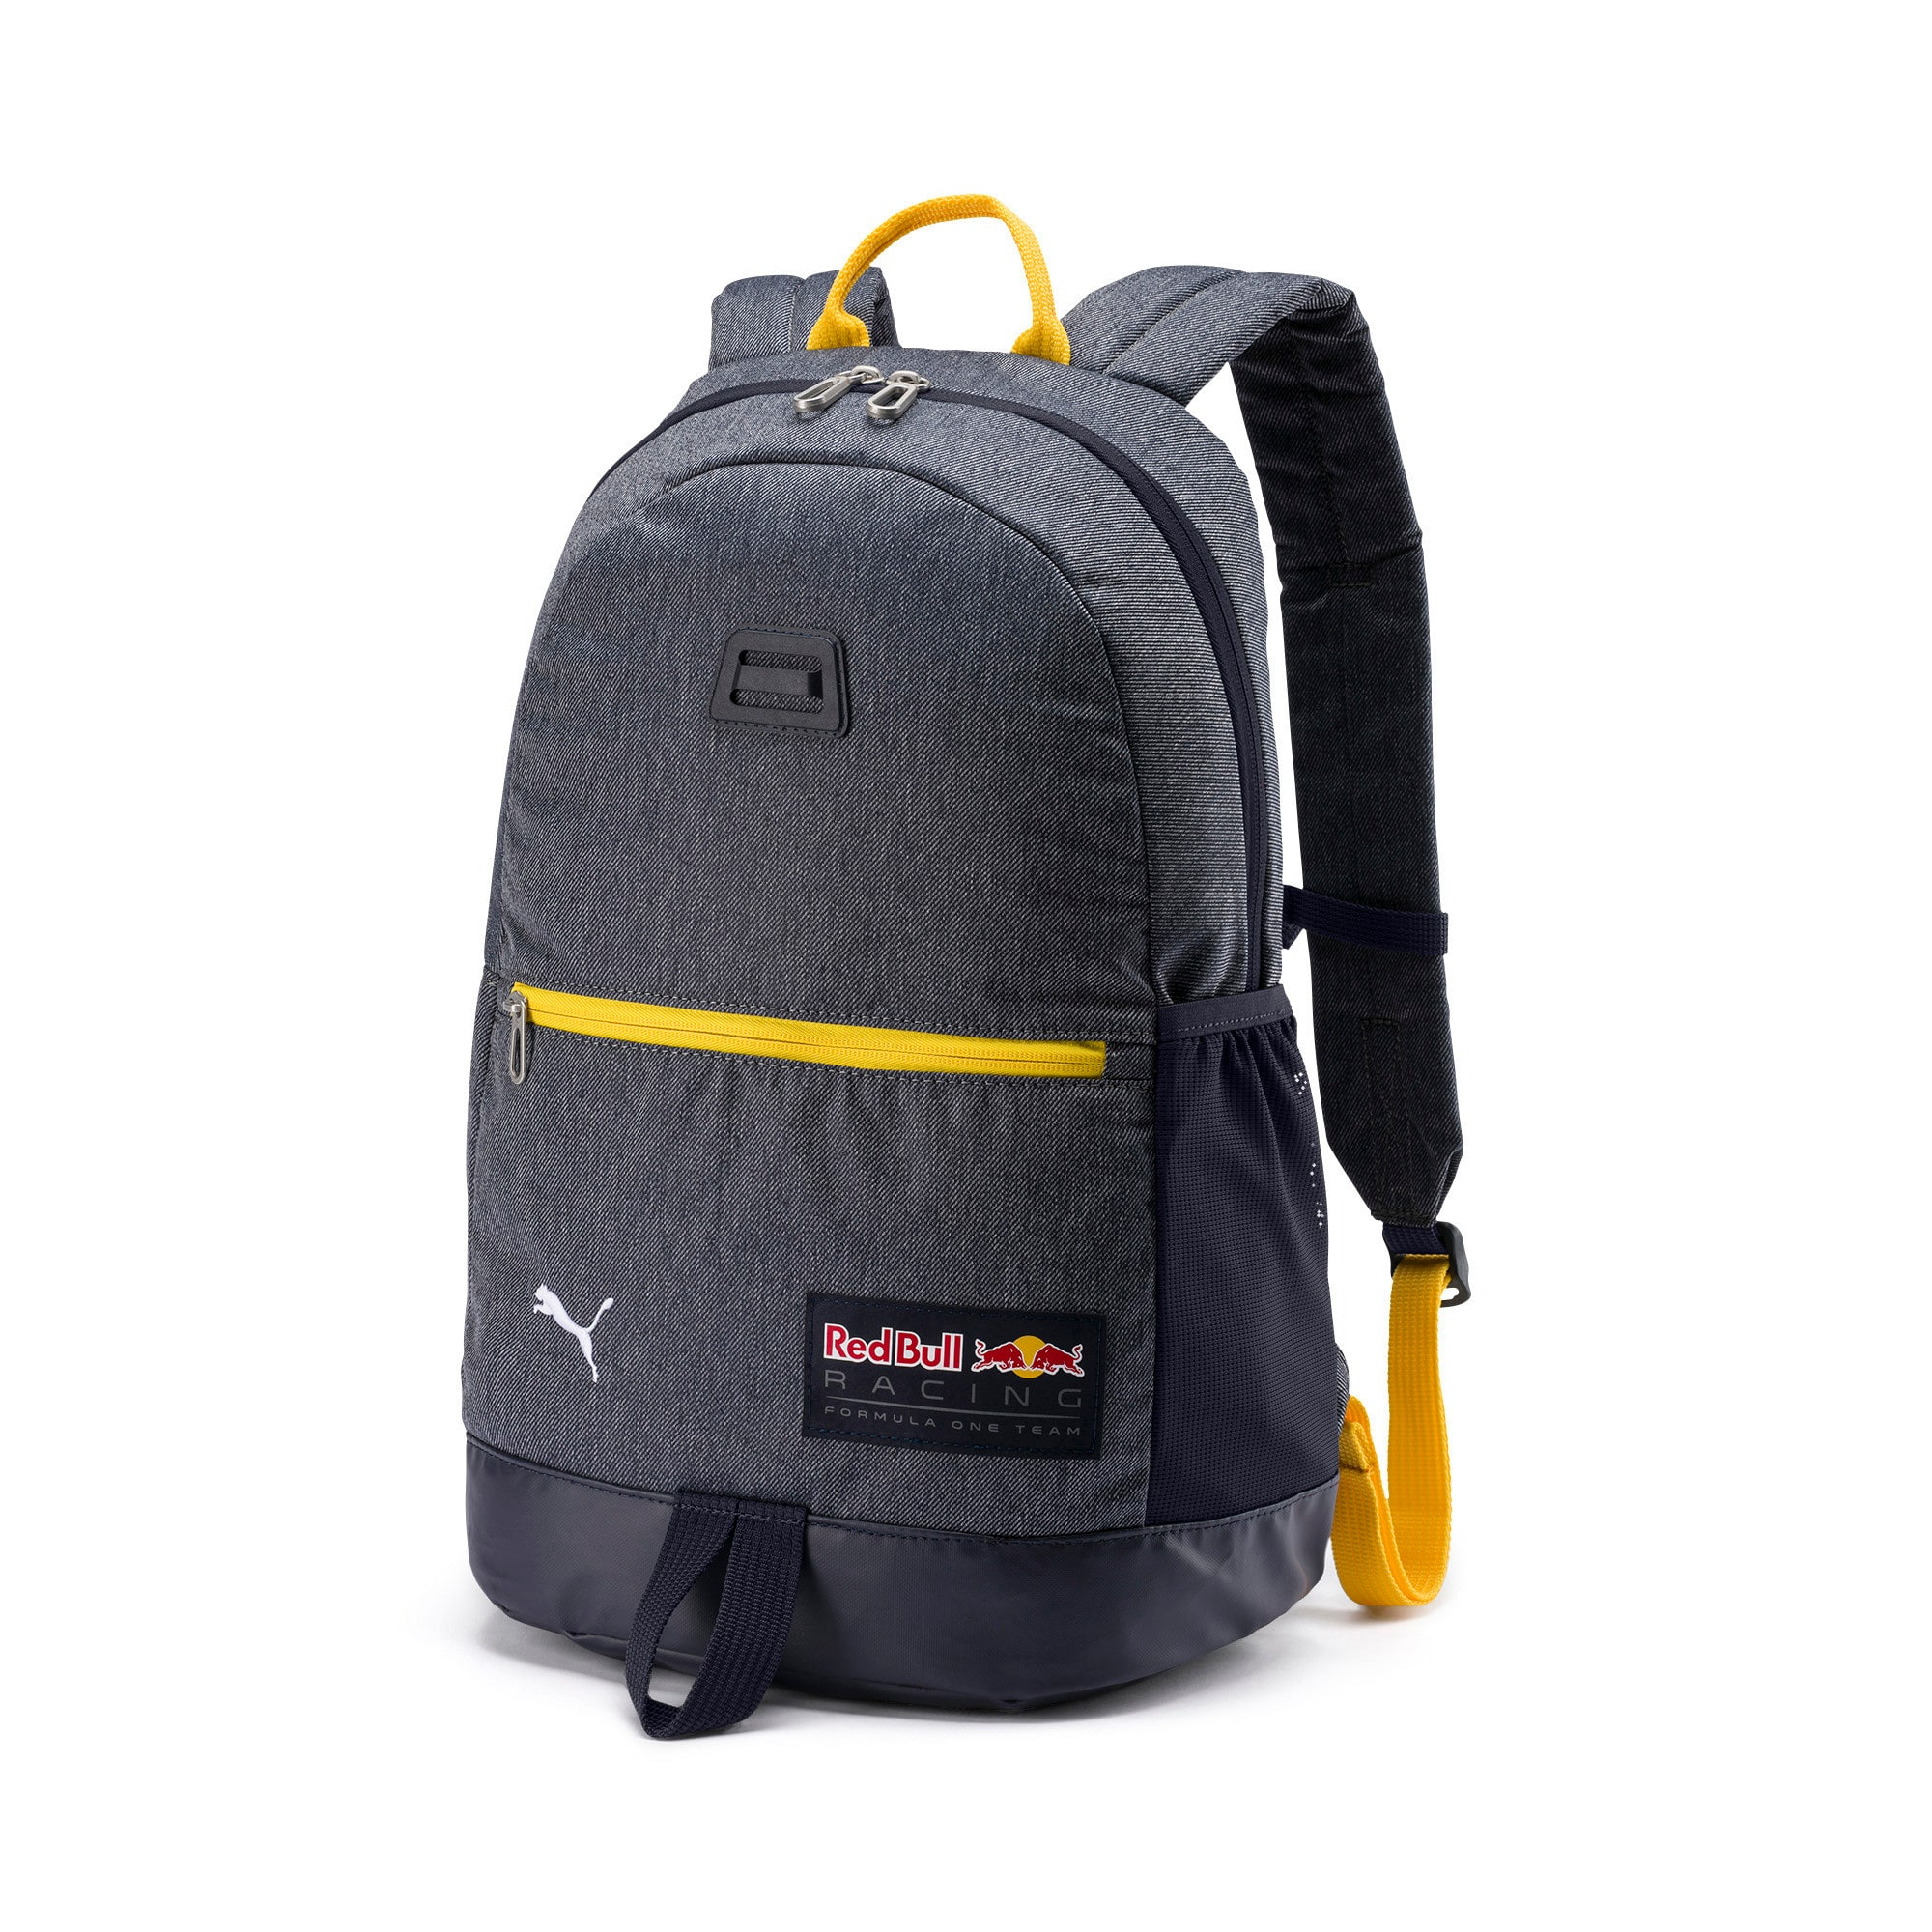 Thumbnail 1 of Red Bull Racing Lifestyle Backpack, NIGHT SKY, medium